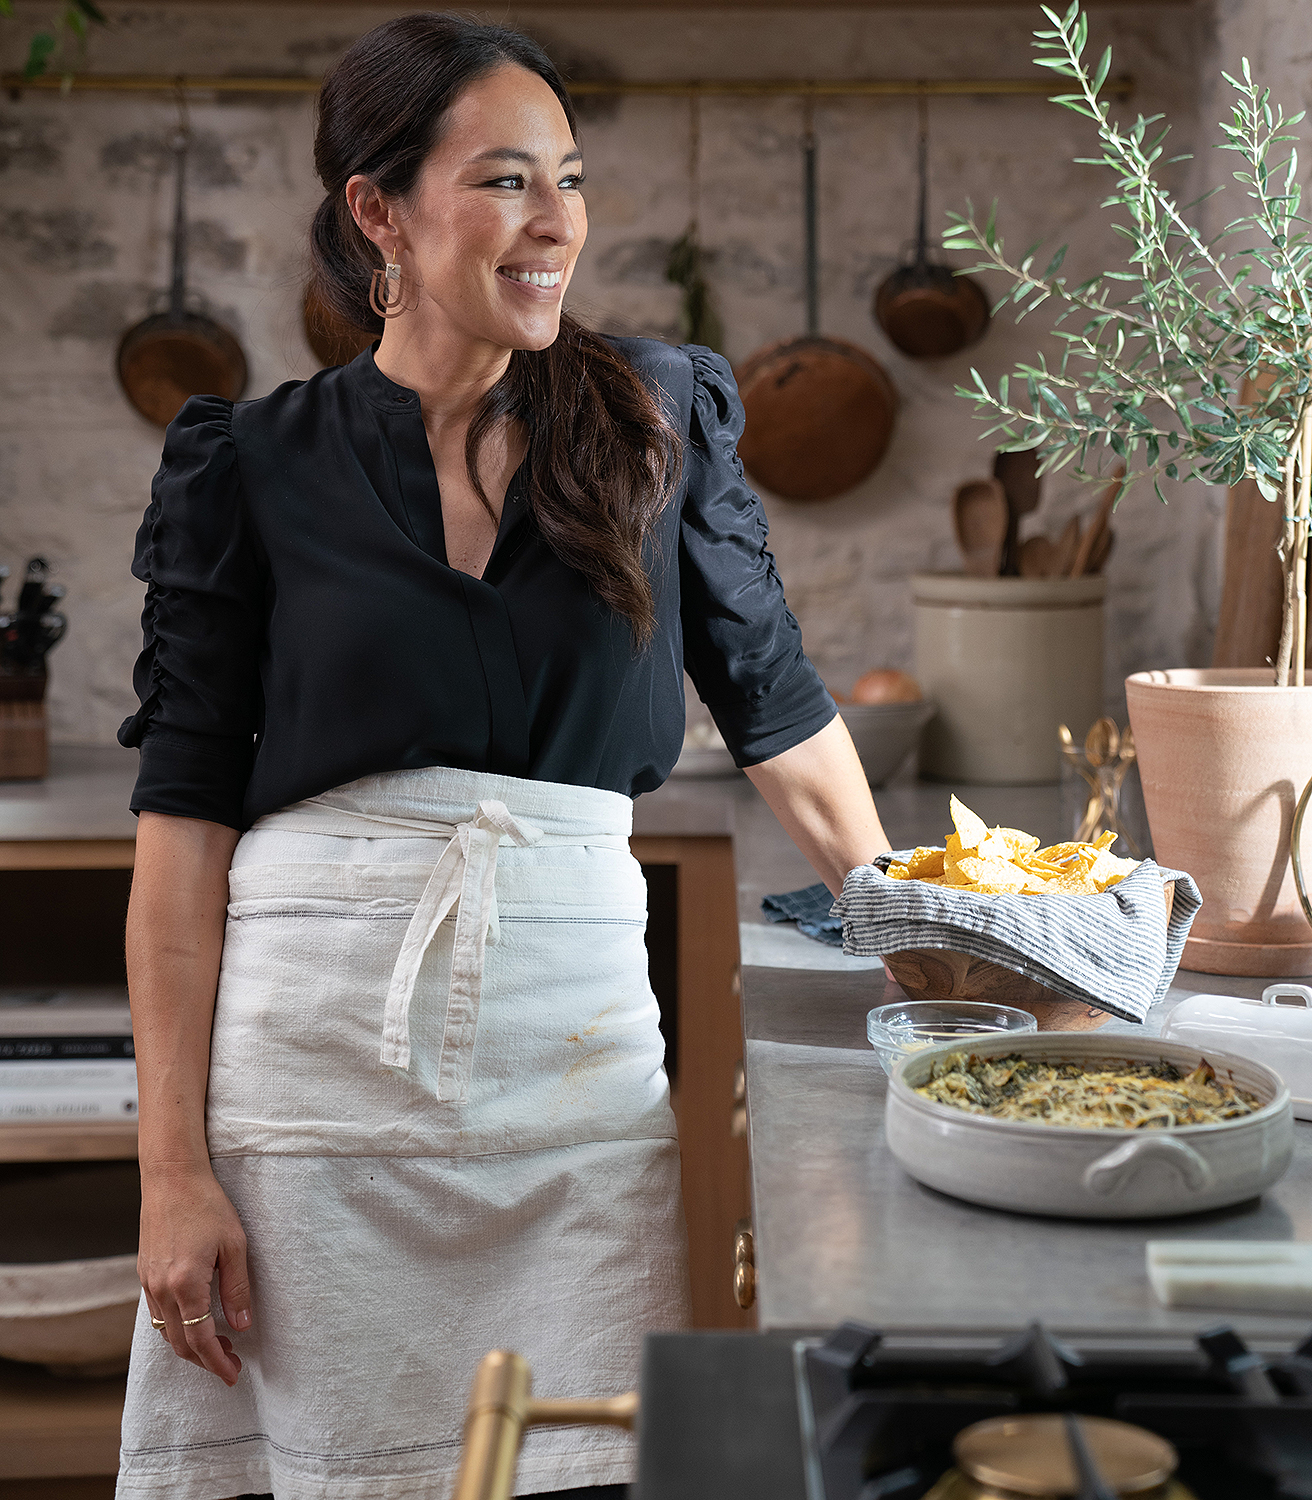 Joanna Gaines Cooks Cheese Balls In Magnolia Table Clip People Com